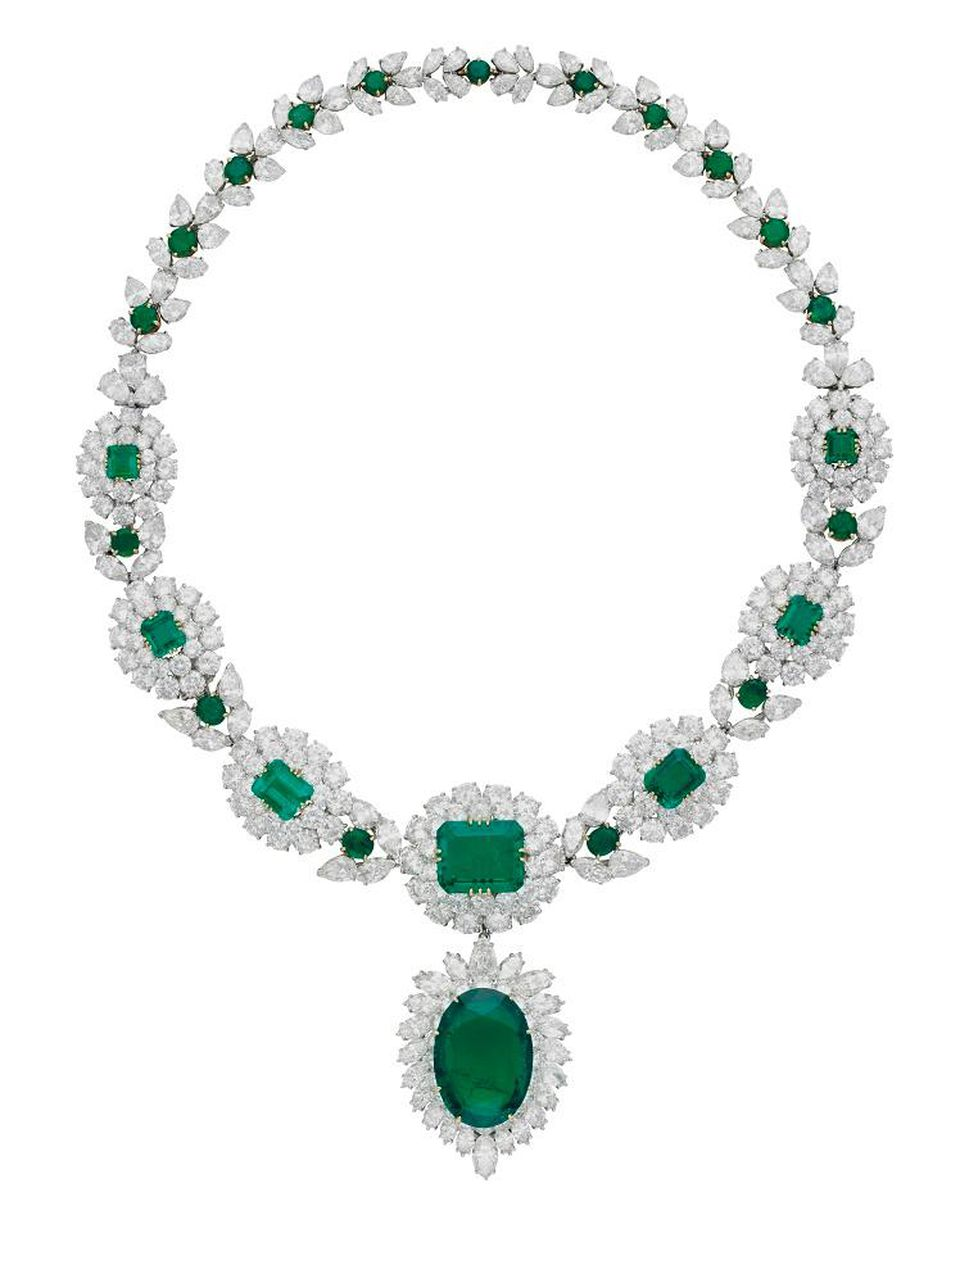 Emerald Diamond Necklace.jpg